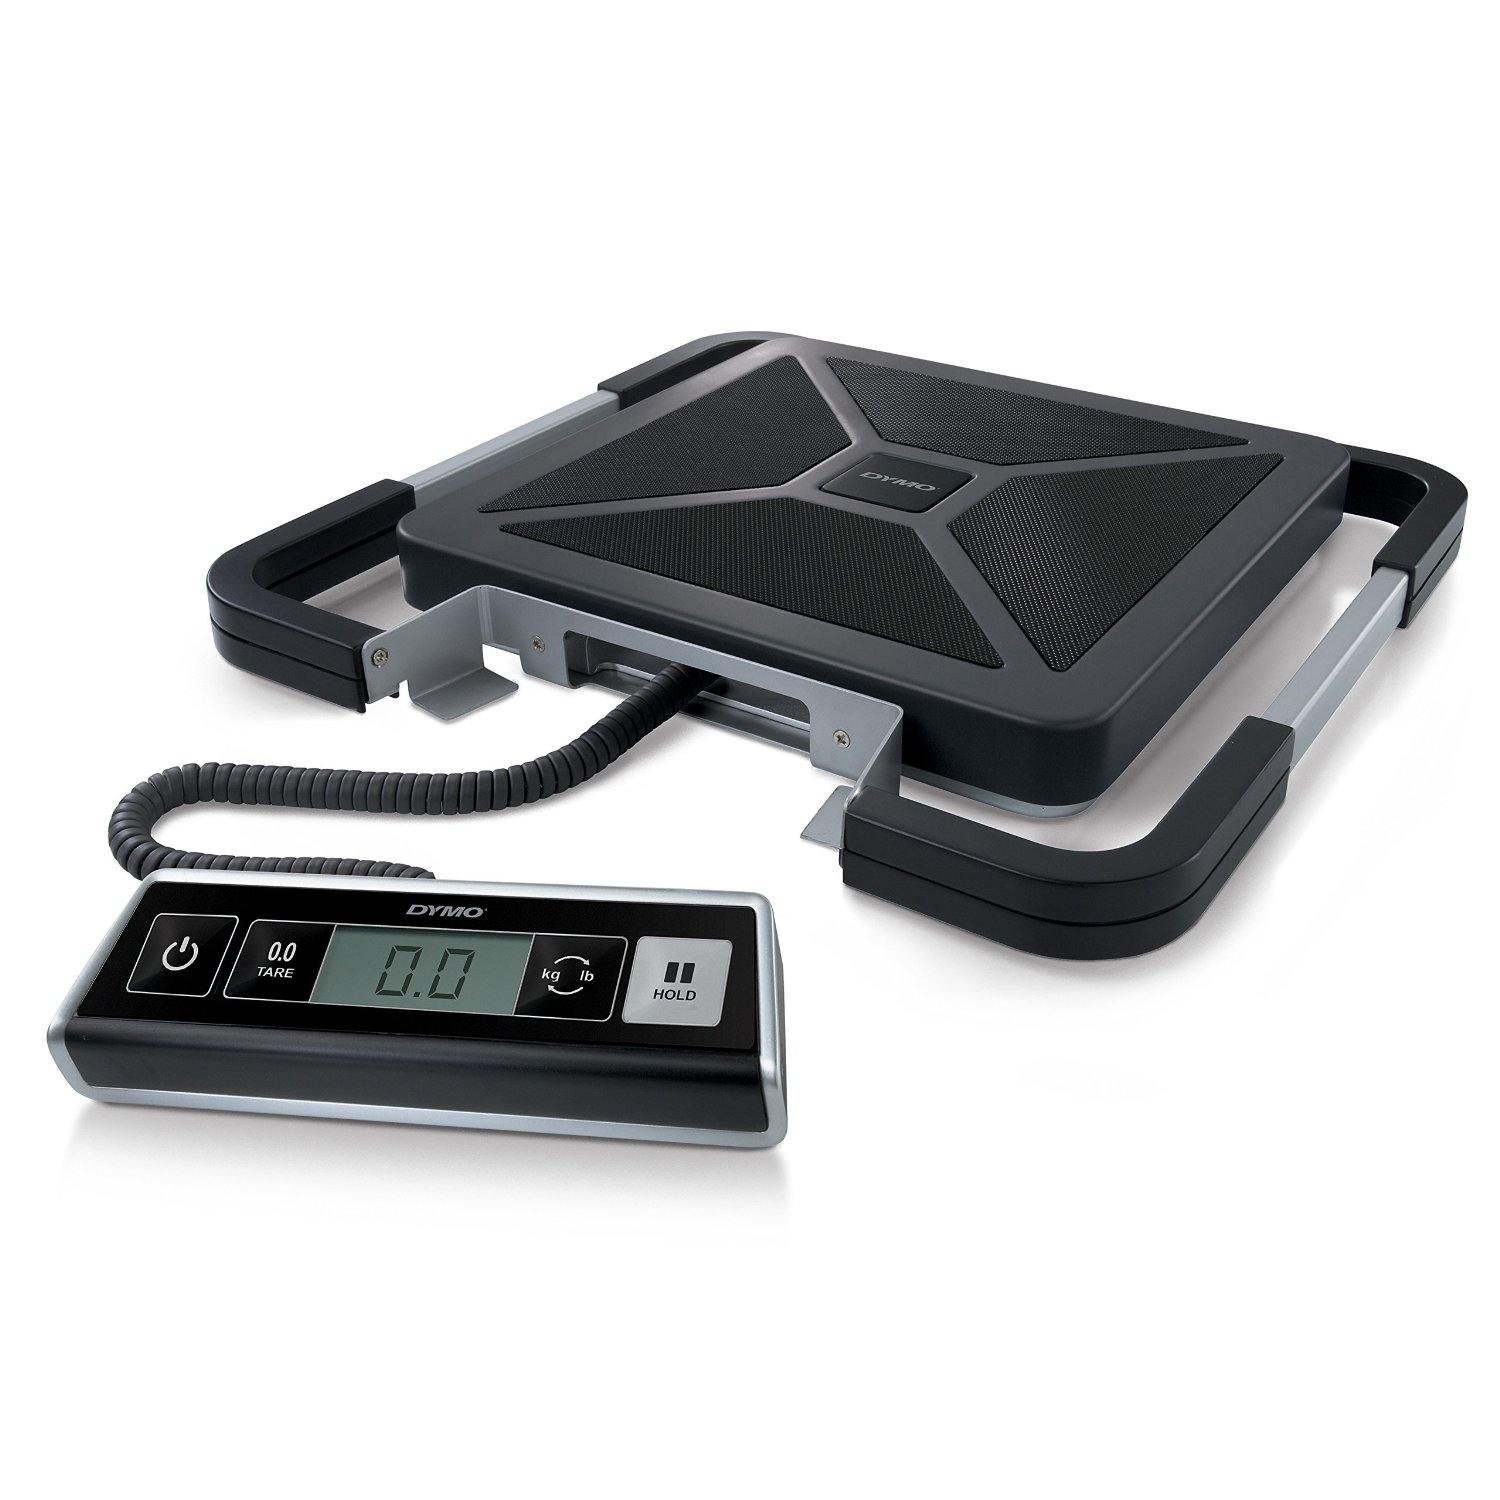 DYMO Digital USB Postal Scale